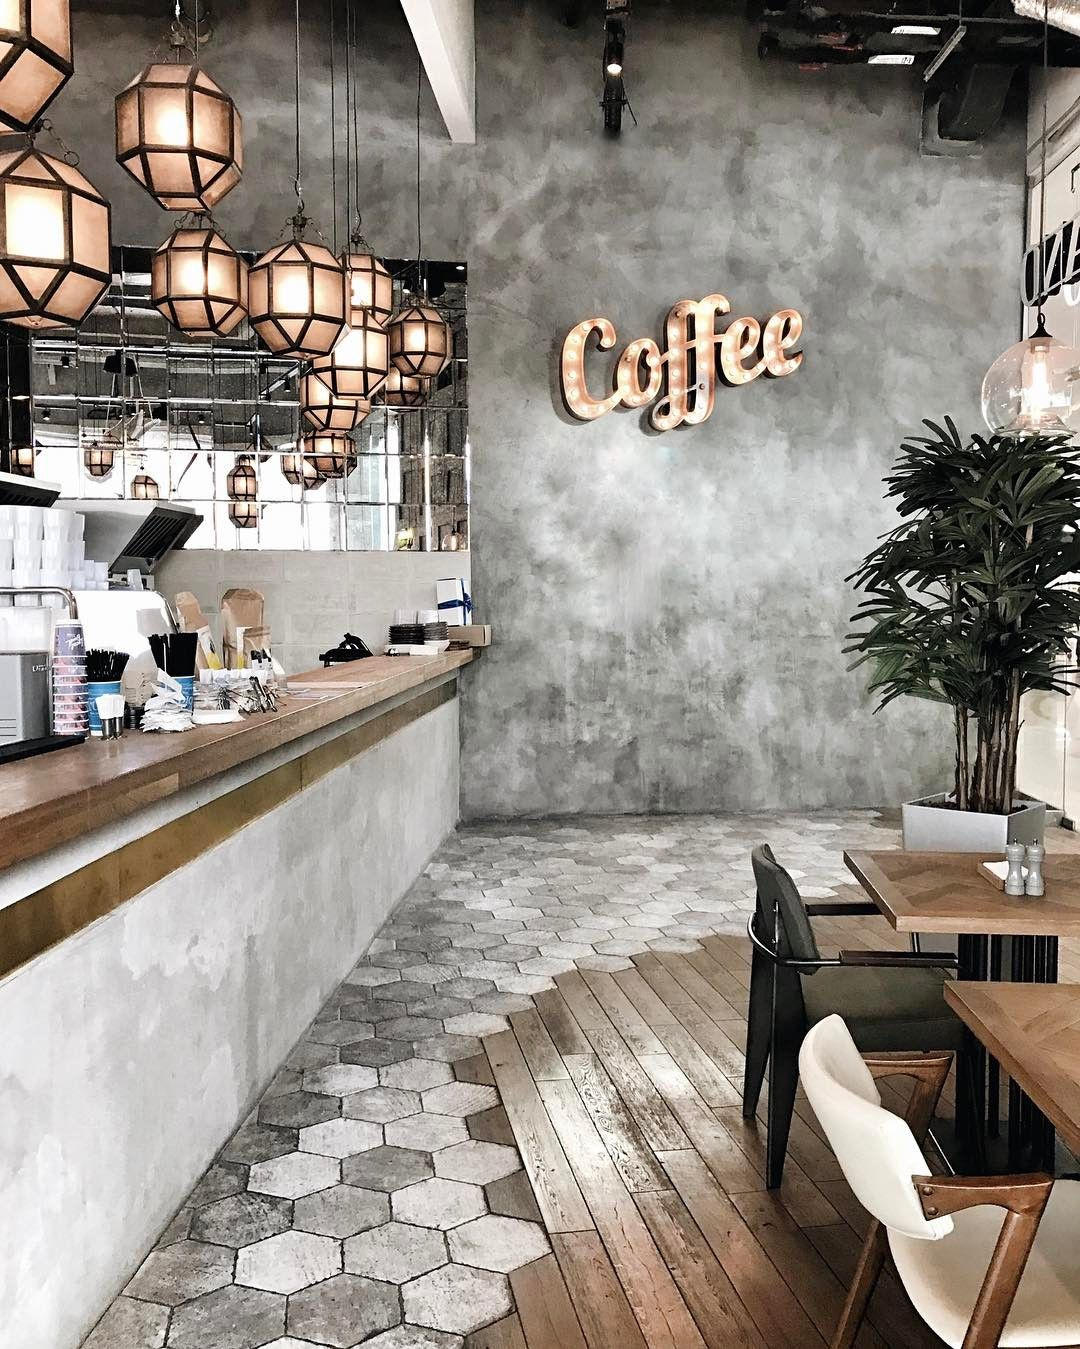 Pin by Renee Collingwood on industrial chic design  Coffee shop design Rustic coffee shop